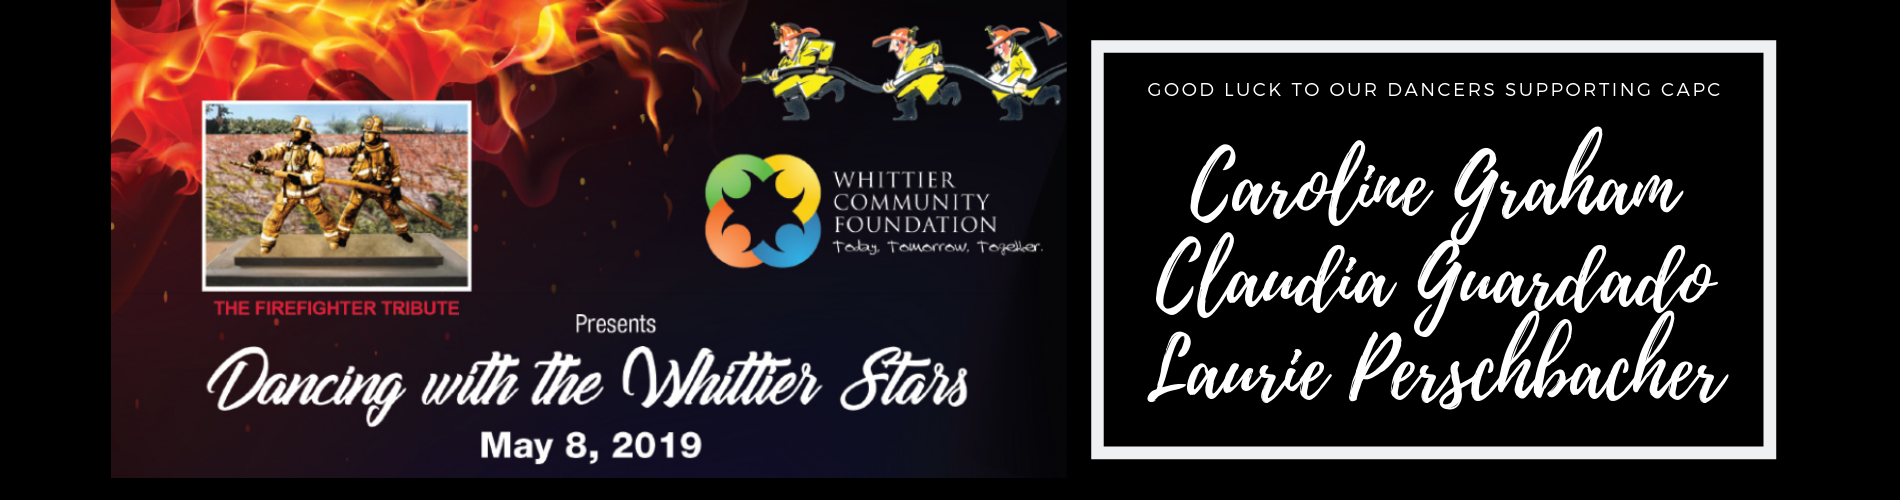 Dancing with the Whittier Stars